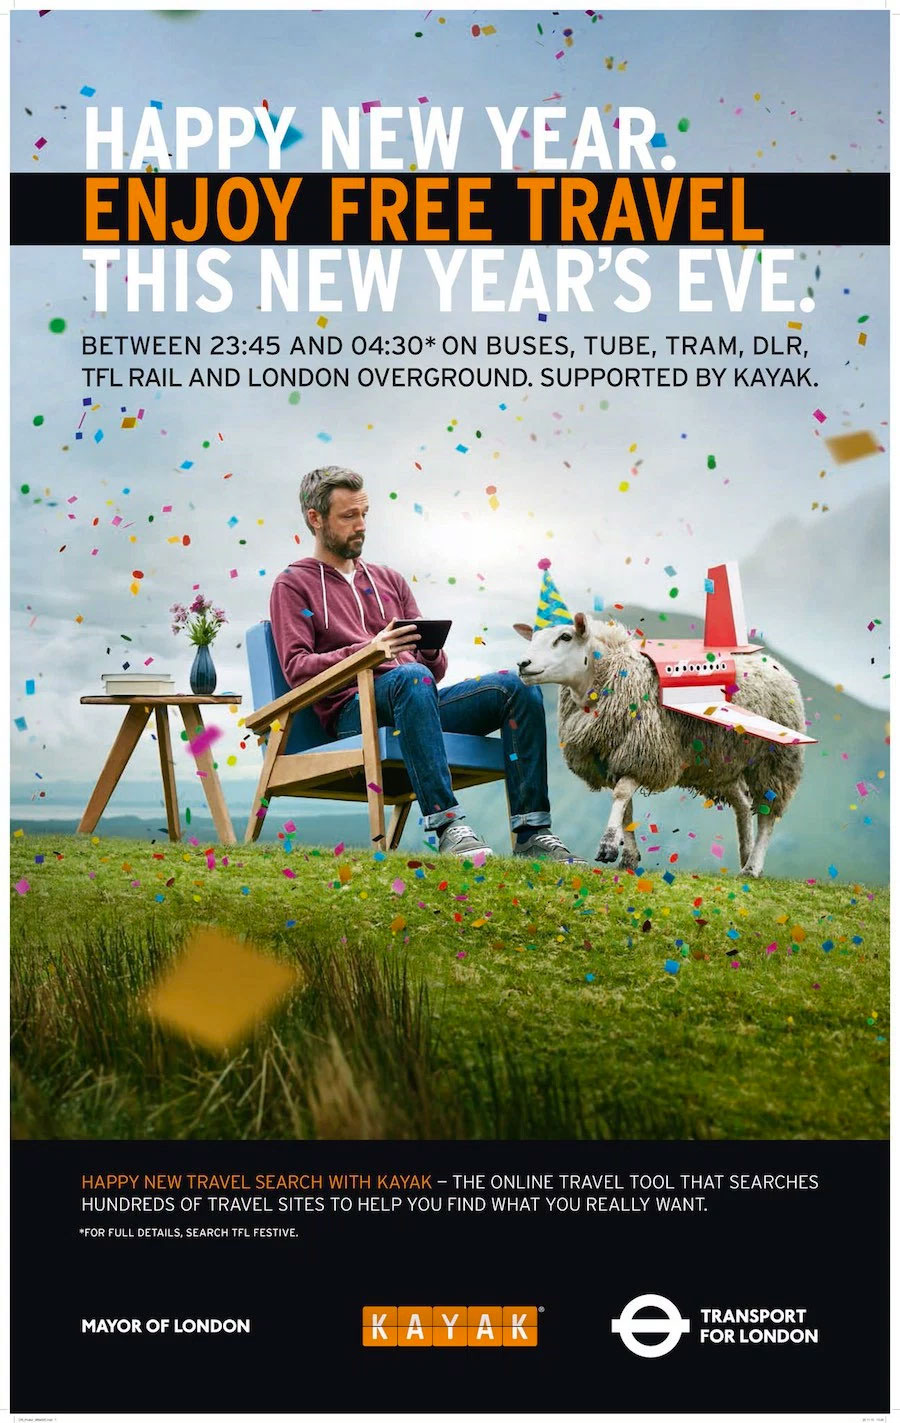 Kayak sponsors TfL on New Year's Eve